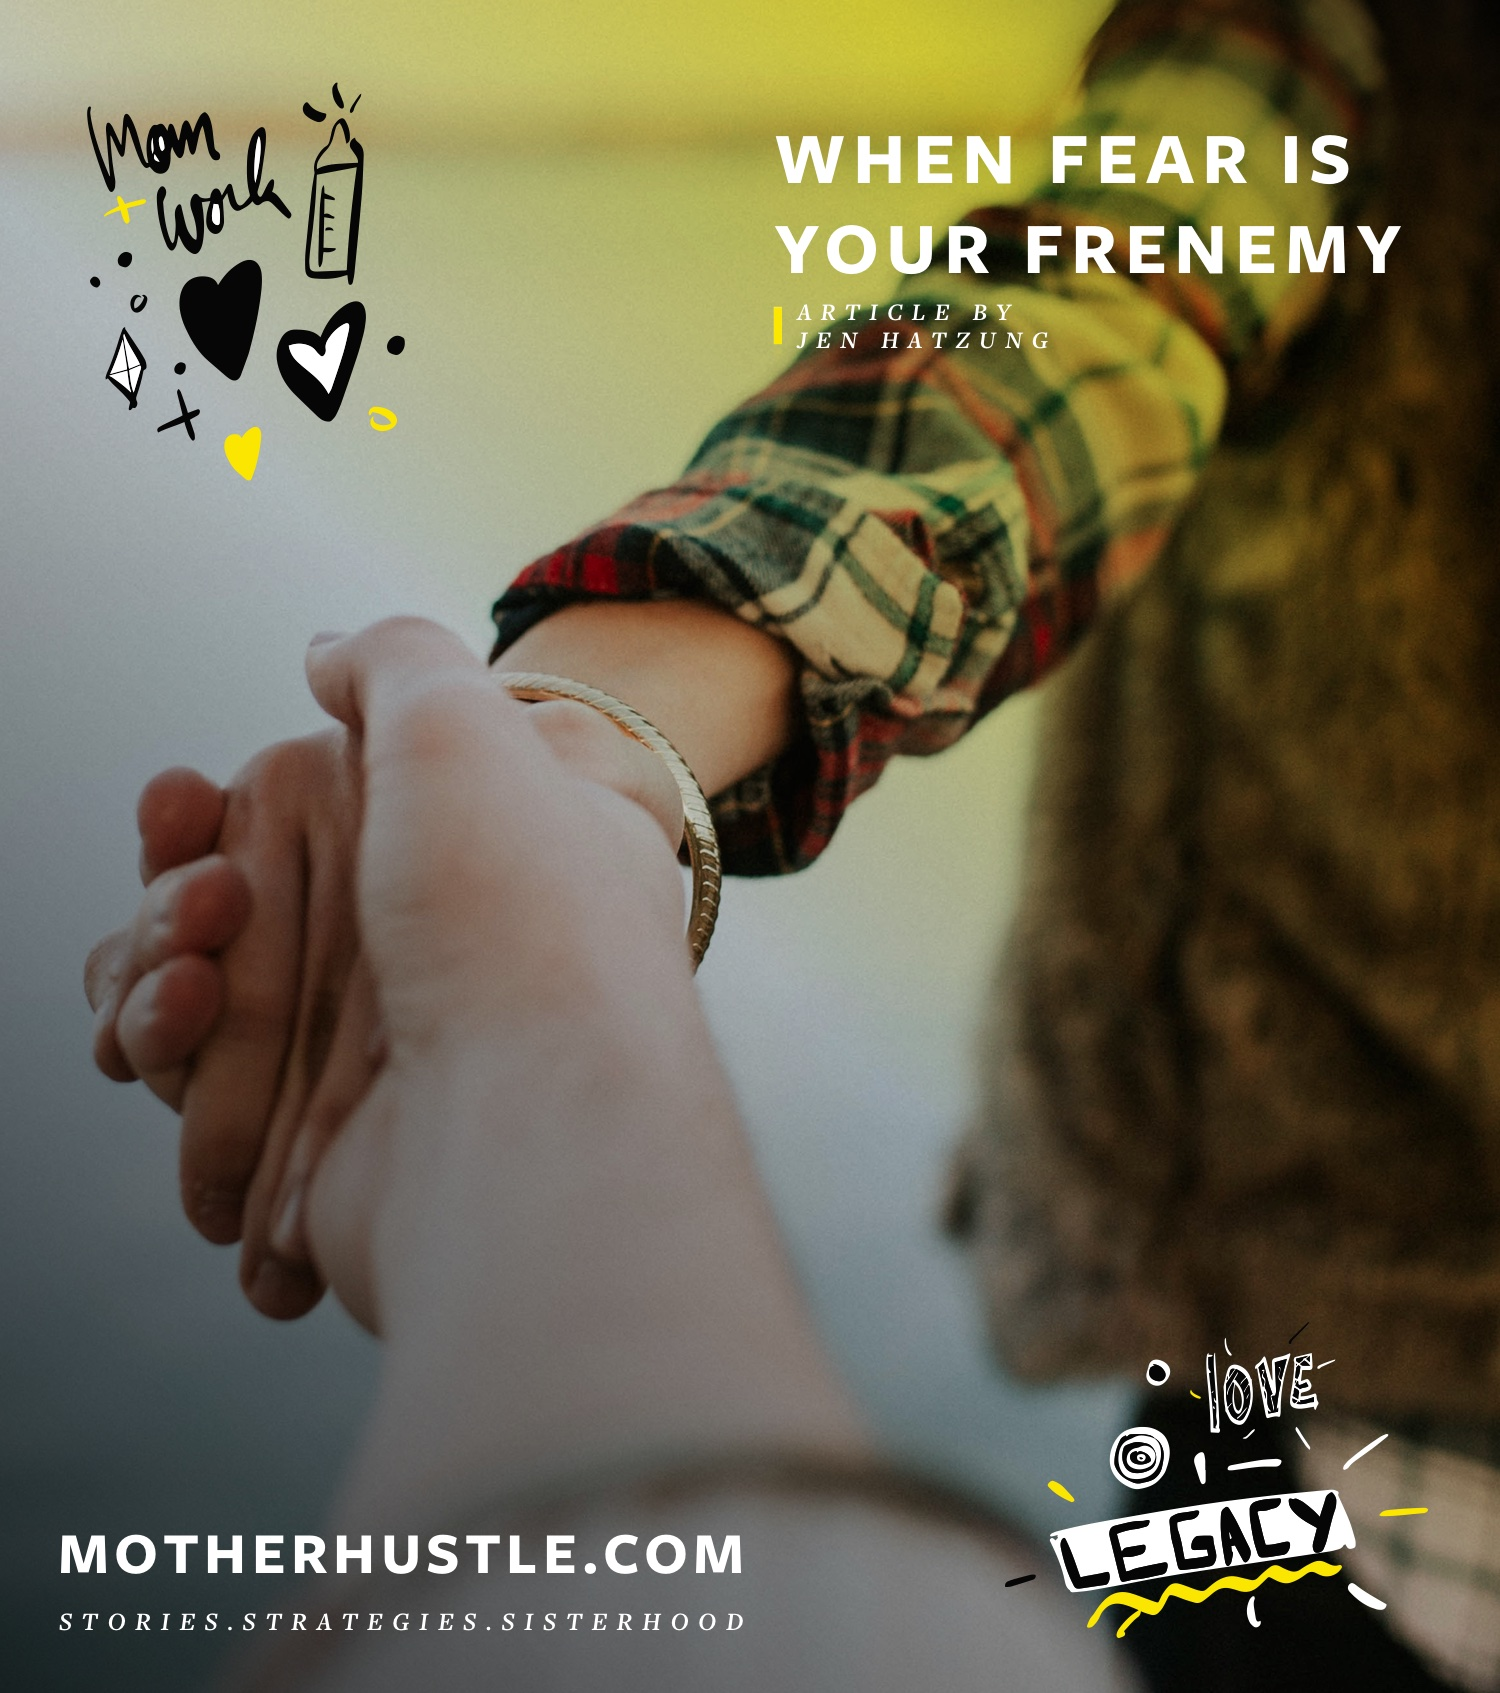 When Fear Is Your Frenemy - by Jen Hatzung for MotherHustle